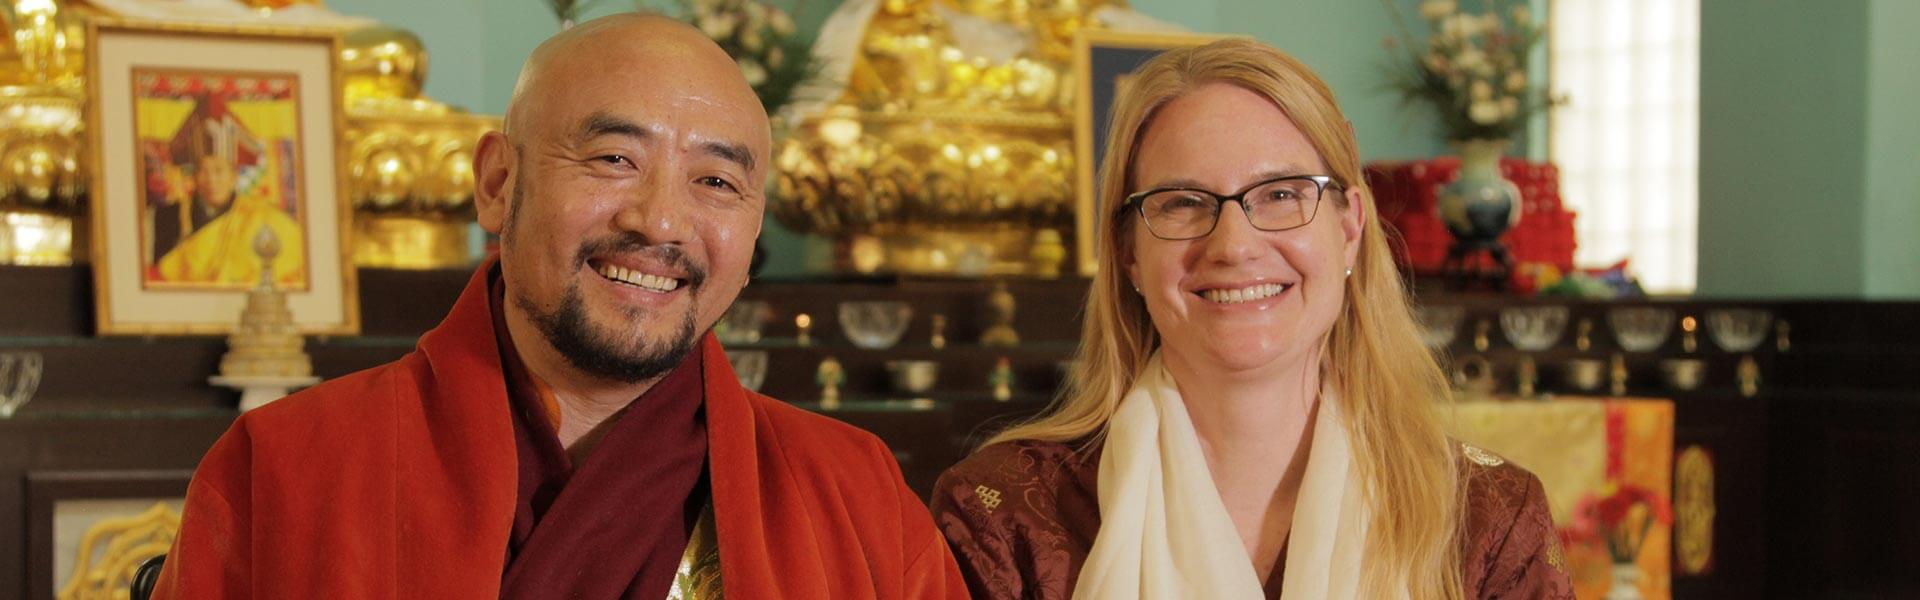 Medicine Buddha Monlam with Anyen Rinpoche and Allison Choying Zangmo